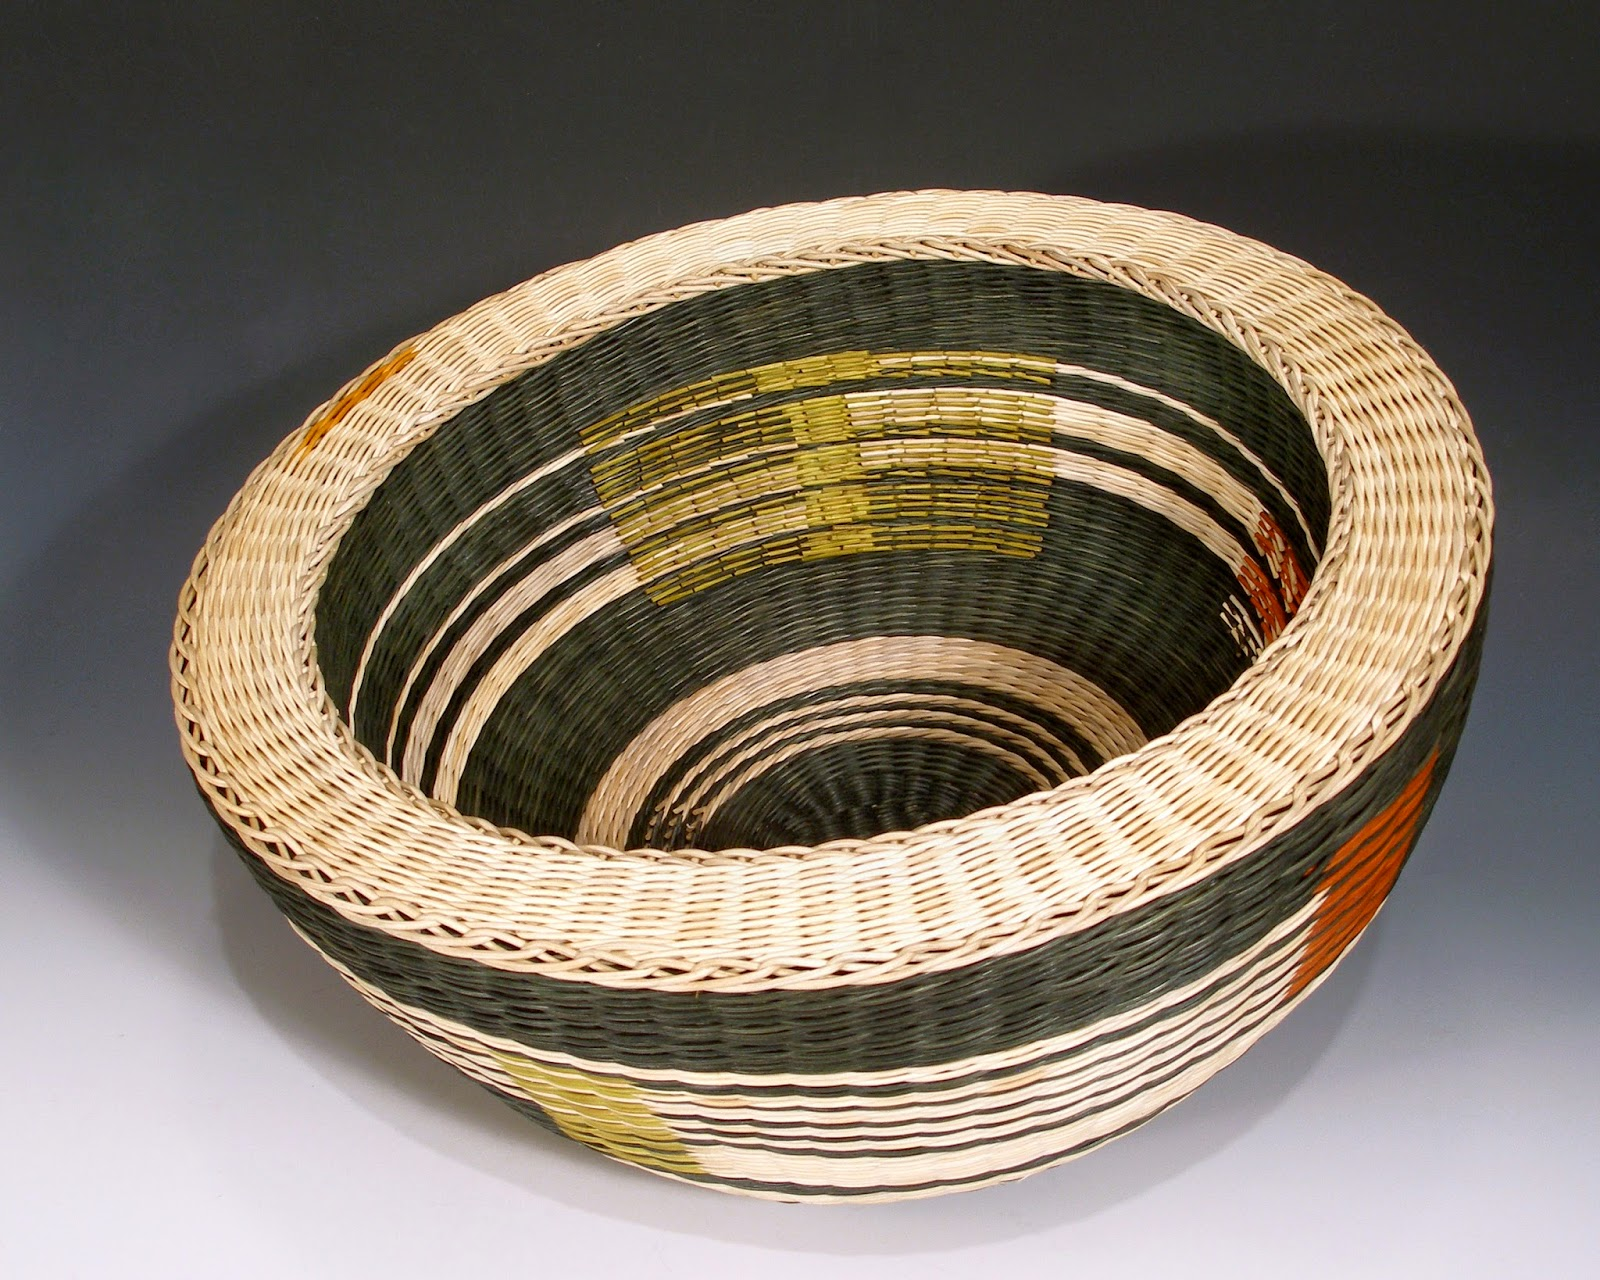 The Art Of Basketry By Kari Lonning : Contemporary basketry game changers fuller craft museum